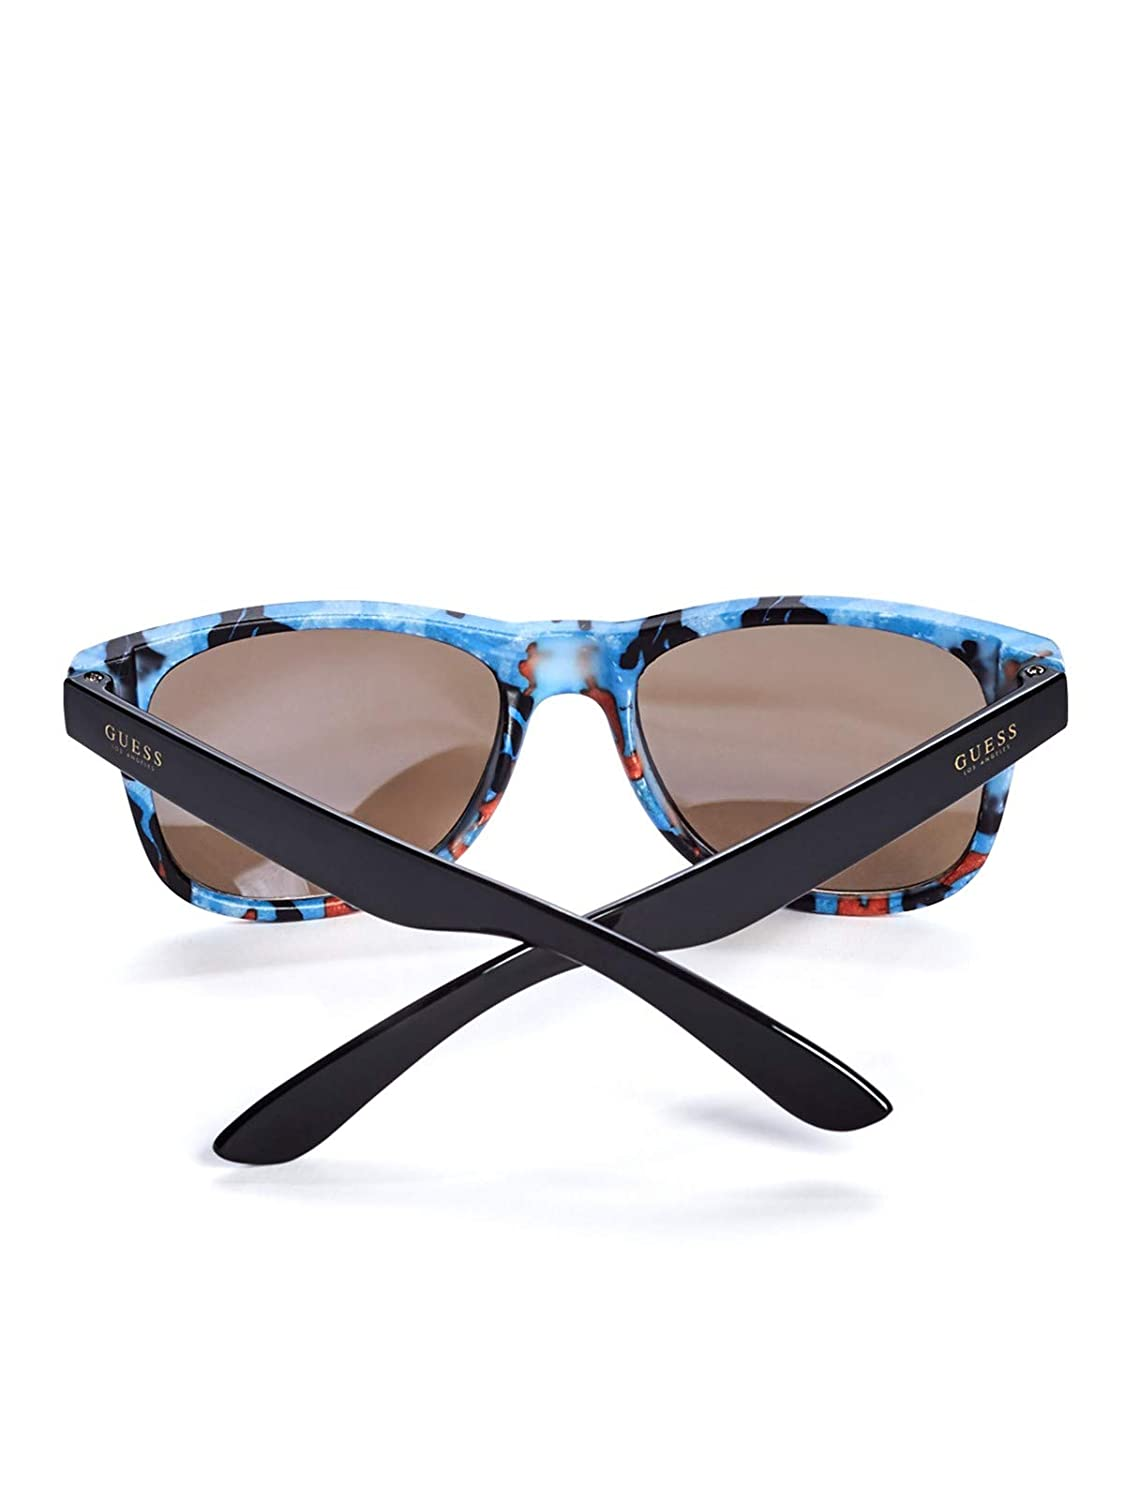 GUESS Factory Kids Boys Square Sunglasses